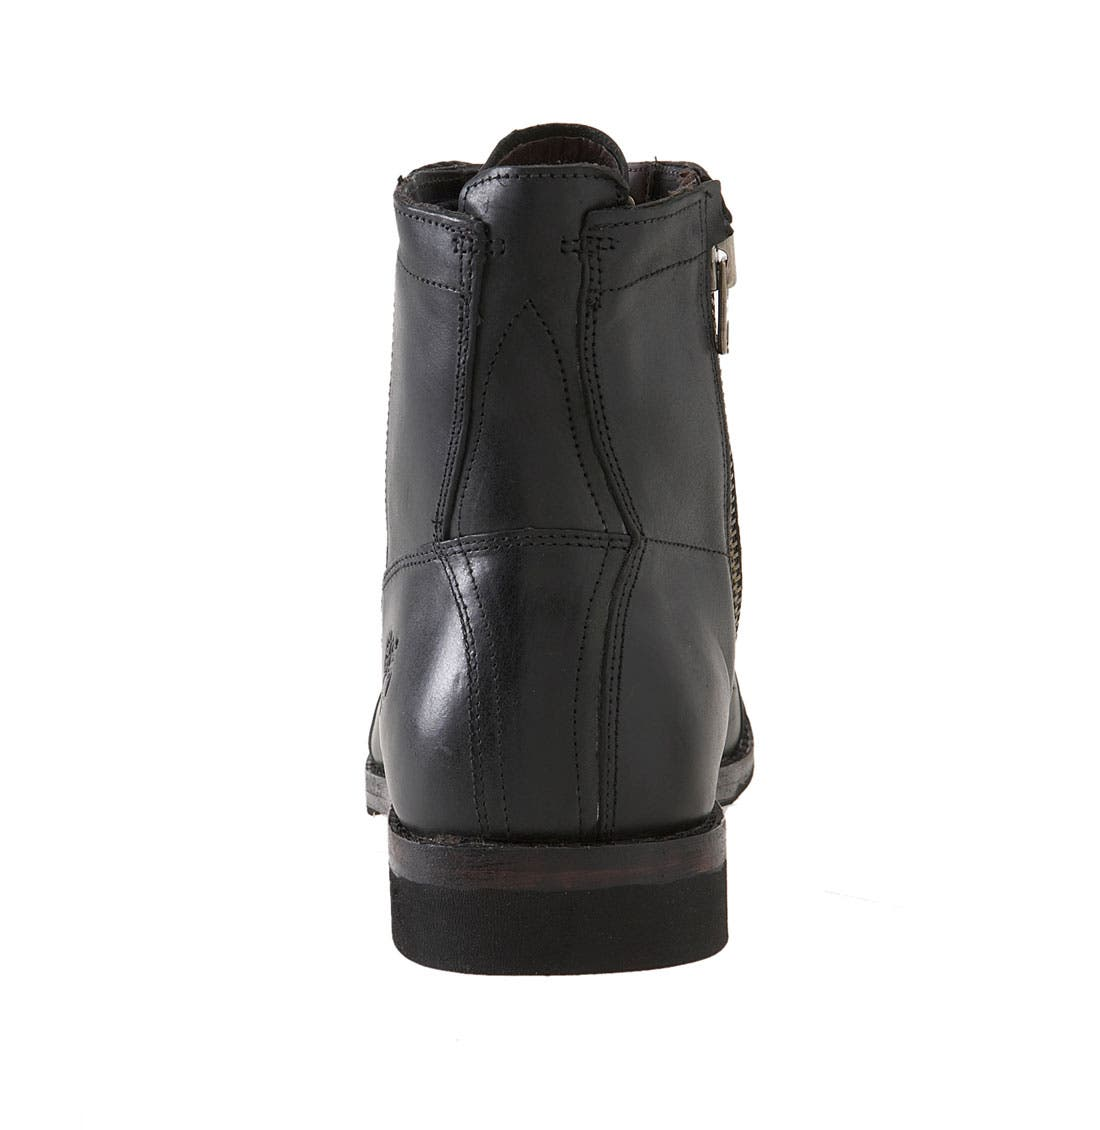 Earthkeepers<sup>®</sup> Side Zip Boot,                             Alternate thumbnail 3, color,                             001